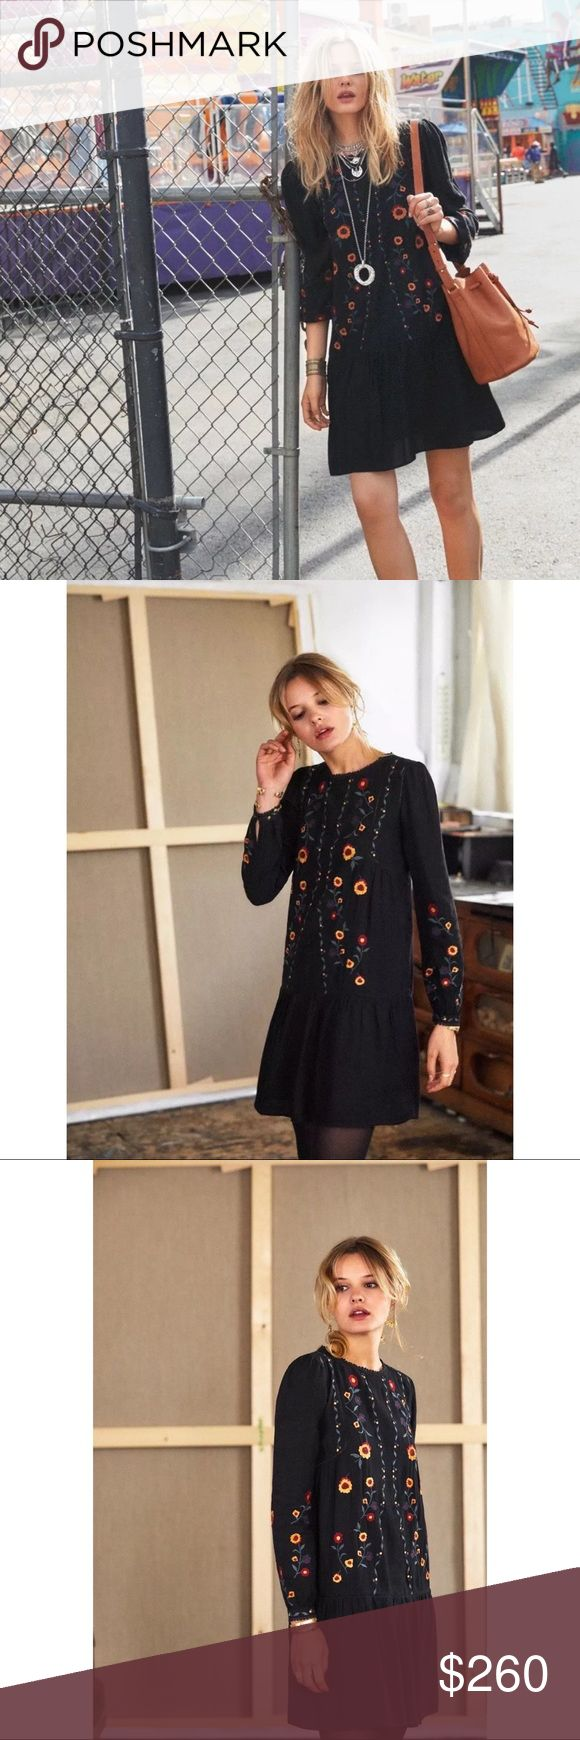 Sèzane Elise Dress - Sold Out Style - NWT •Size 36 (US 4? Can fit 0-4) •Adorable embroidered dress with great details •Super cute on, very flattering •Wear with lined leggings or tights for a perfect winter look  Ask Qs; all sales final Sezane Dresses Mini